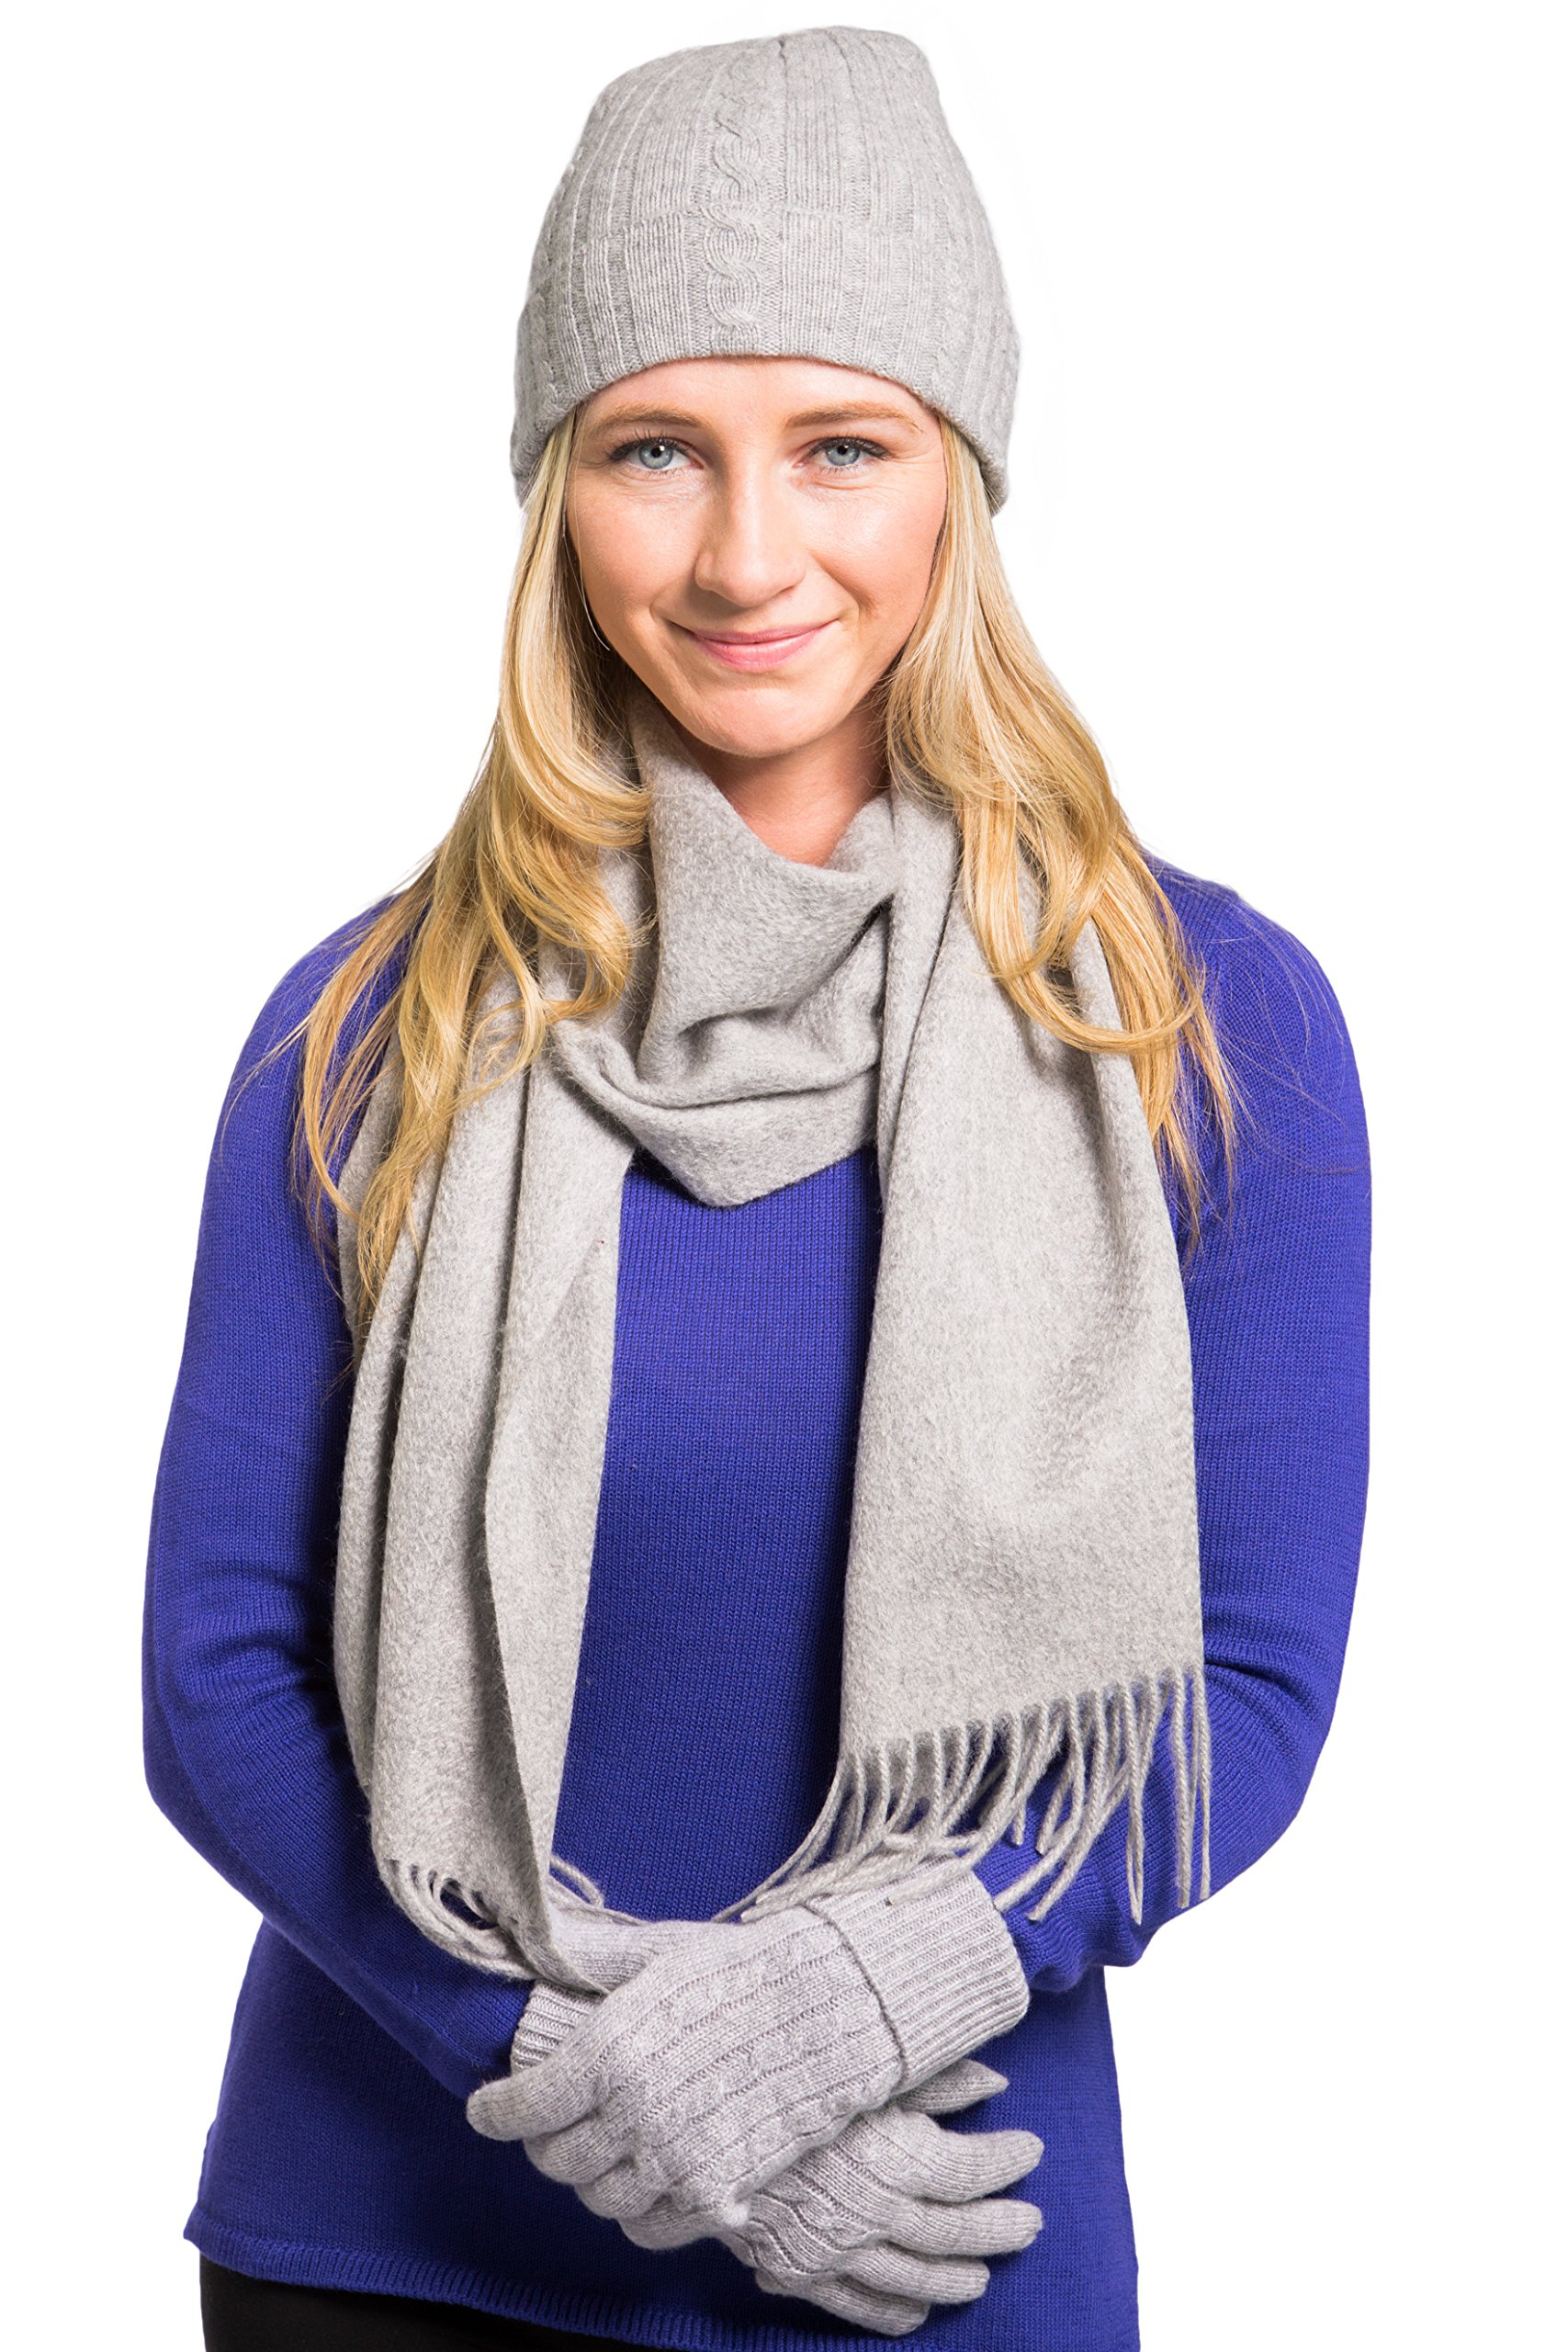 Fishers Finery Women's 100% Cashmere Hat Glove and Scarf Set; Gift Box (Gray) by Fishers Finery